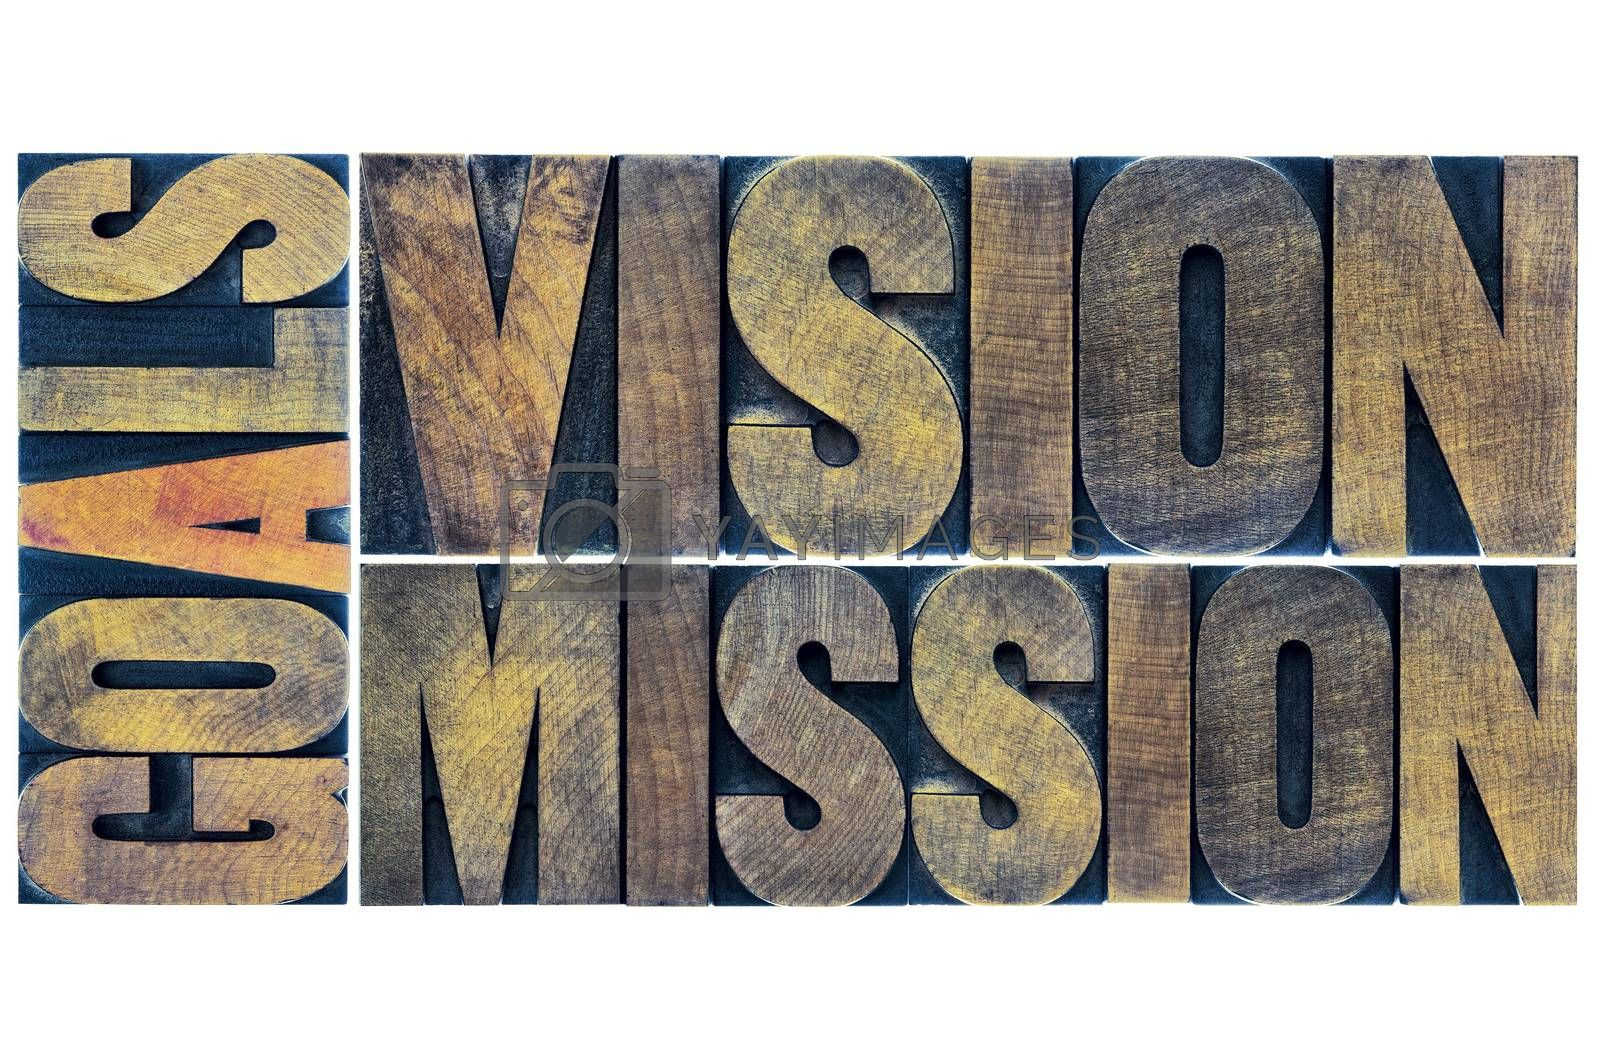 goals, vision and mission typography abstract - a collage of isolated words in letterpress wood type